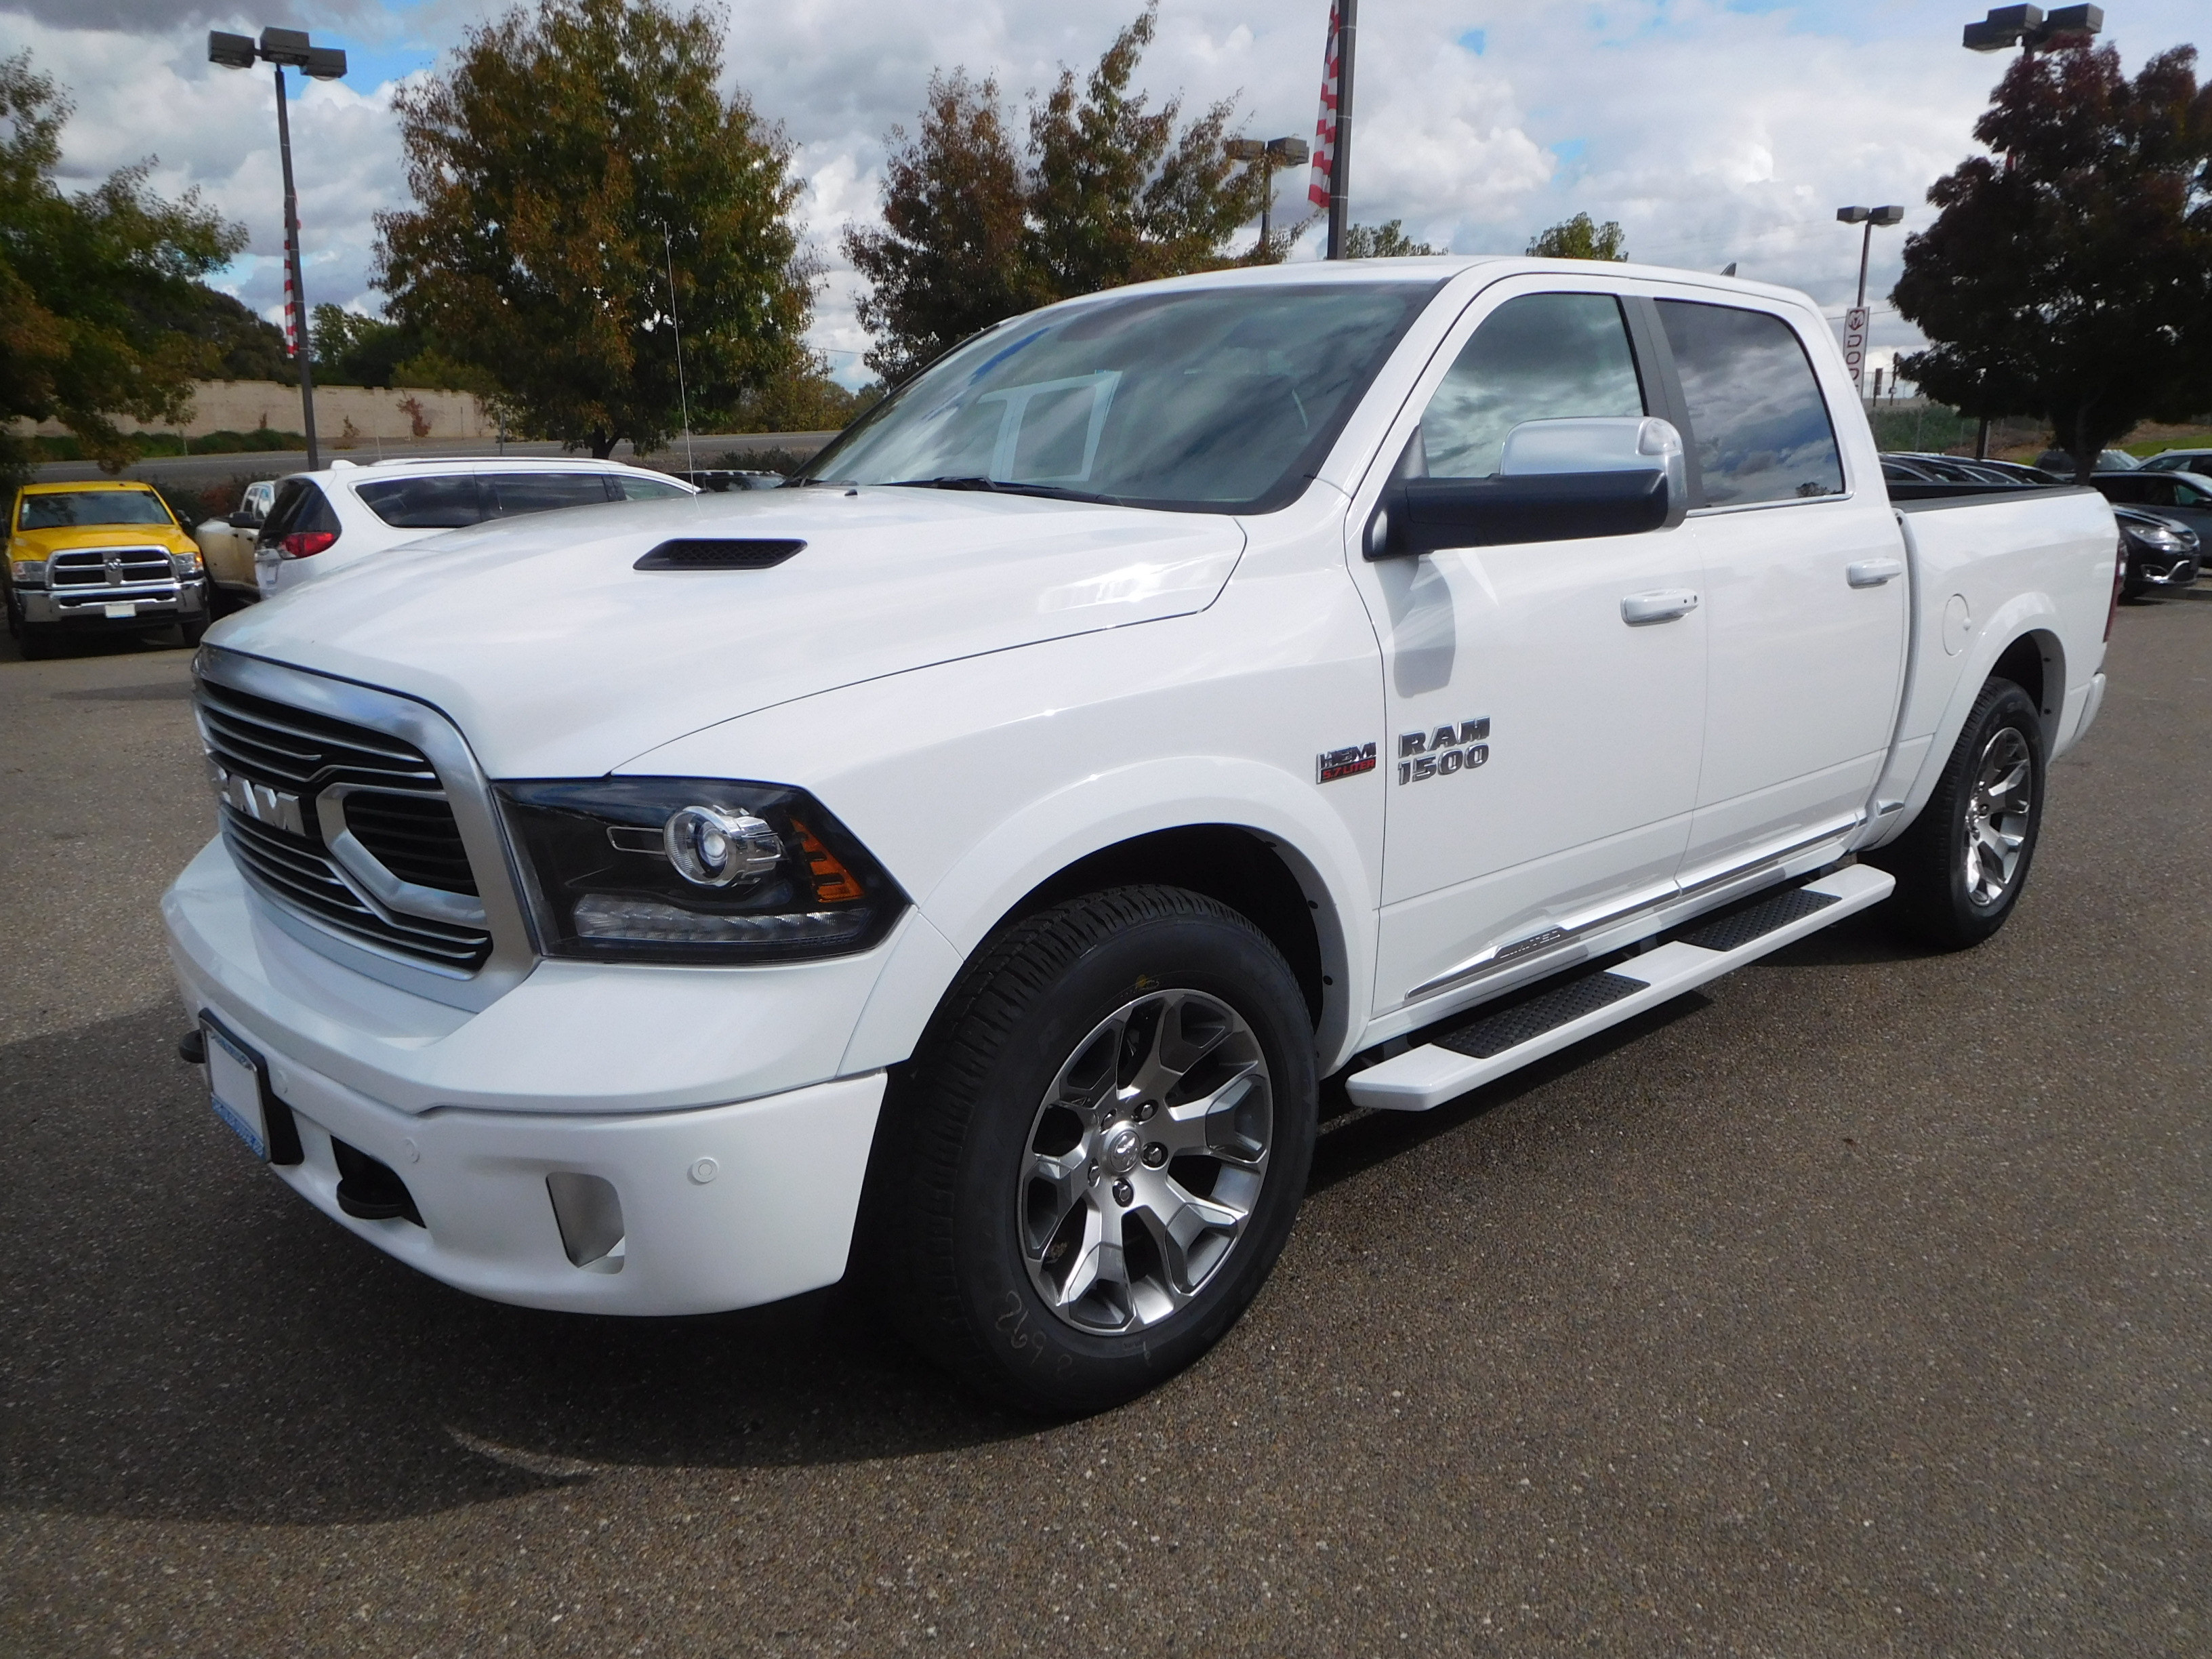 2018 Ram 1500 Crew Cab 4x4, Pickup #15386 - photo 5